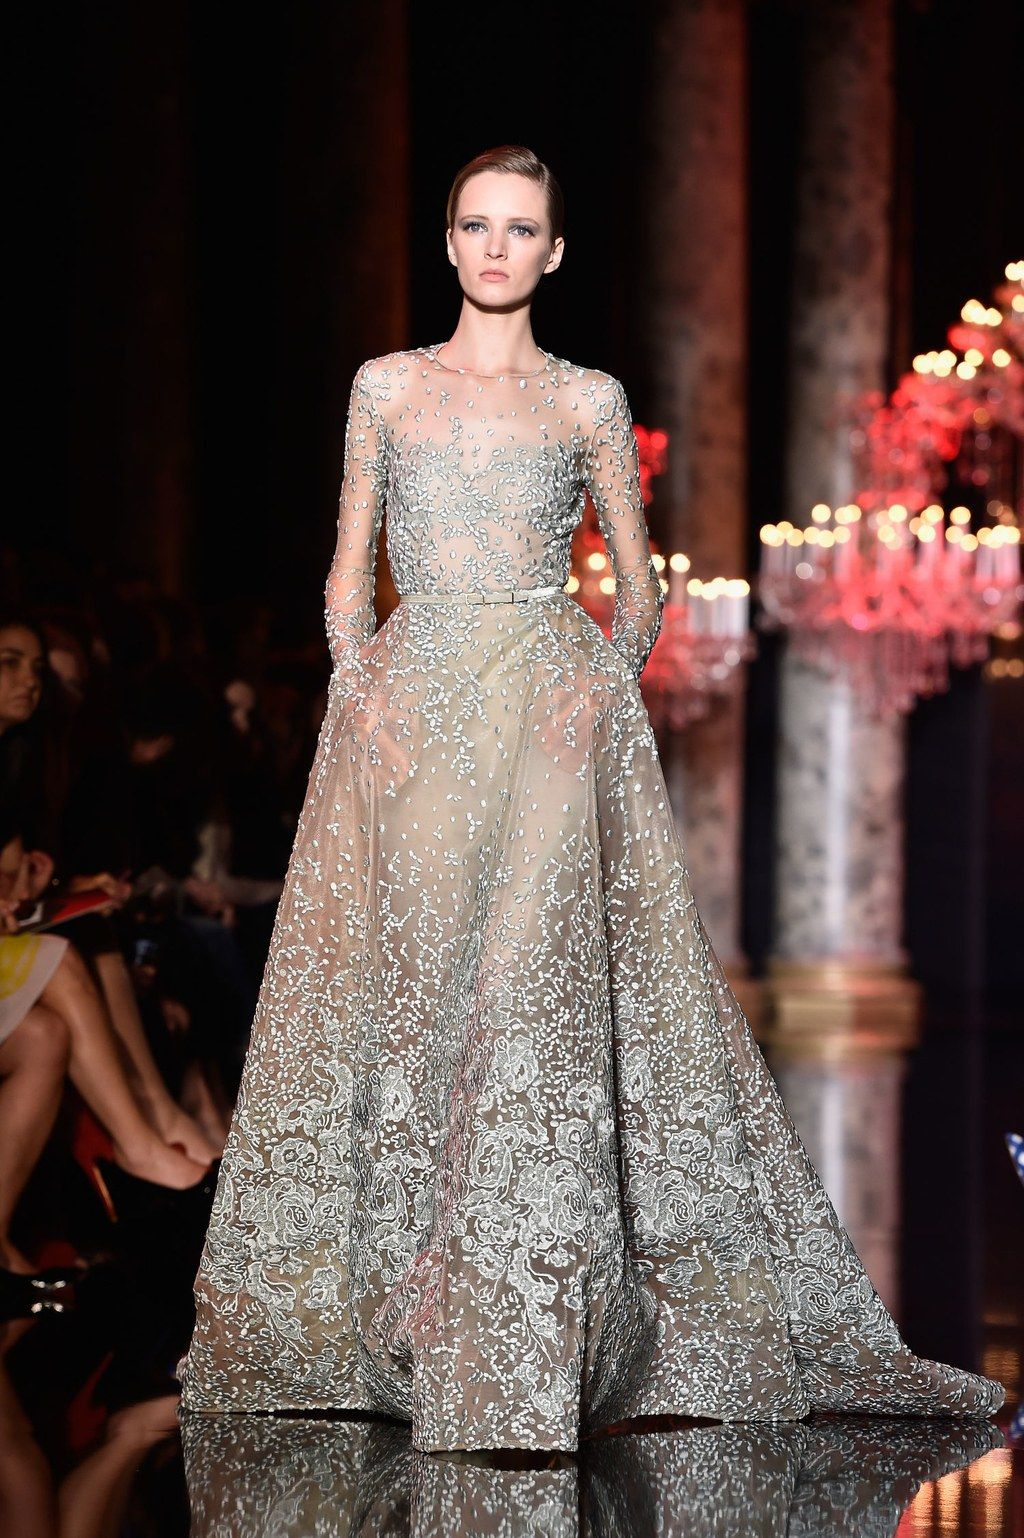 The elie saab wedding dress and 3 more wedding y dresses from the 3 elie saab paris fashion week wedding dresses wedding gowns 0709 junglespirit